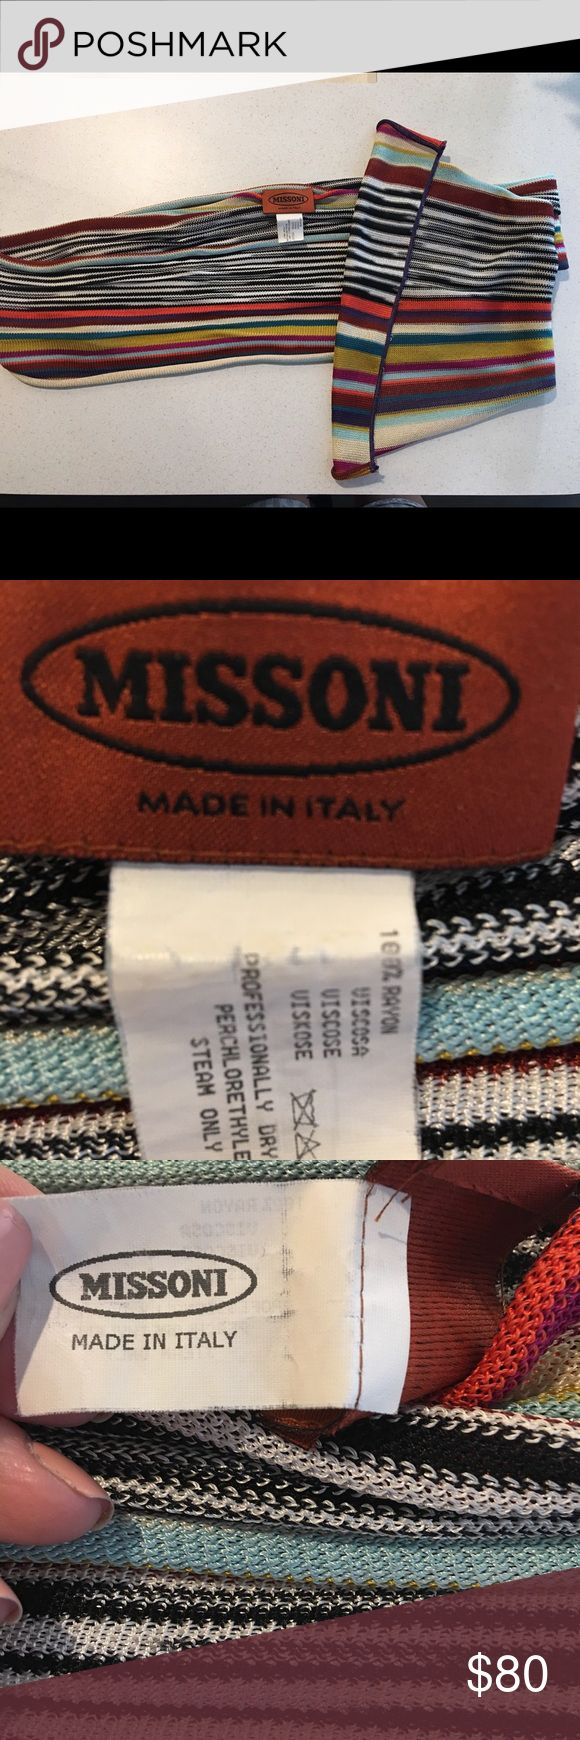 Missoni scarf Perfect condition missoni scarf Missoni Accessories Scarves & Wraps